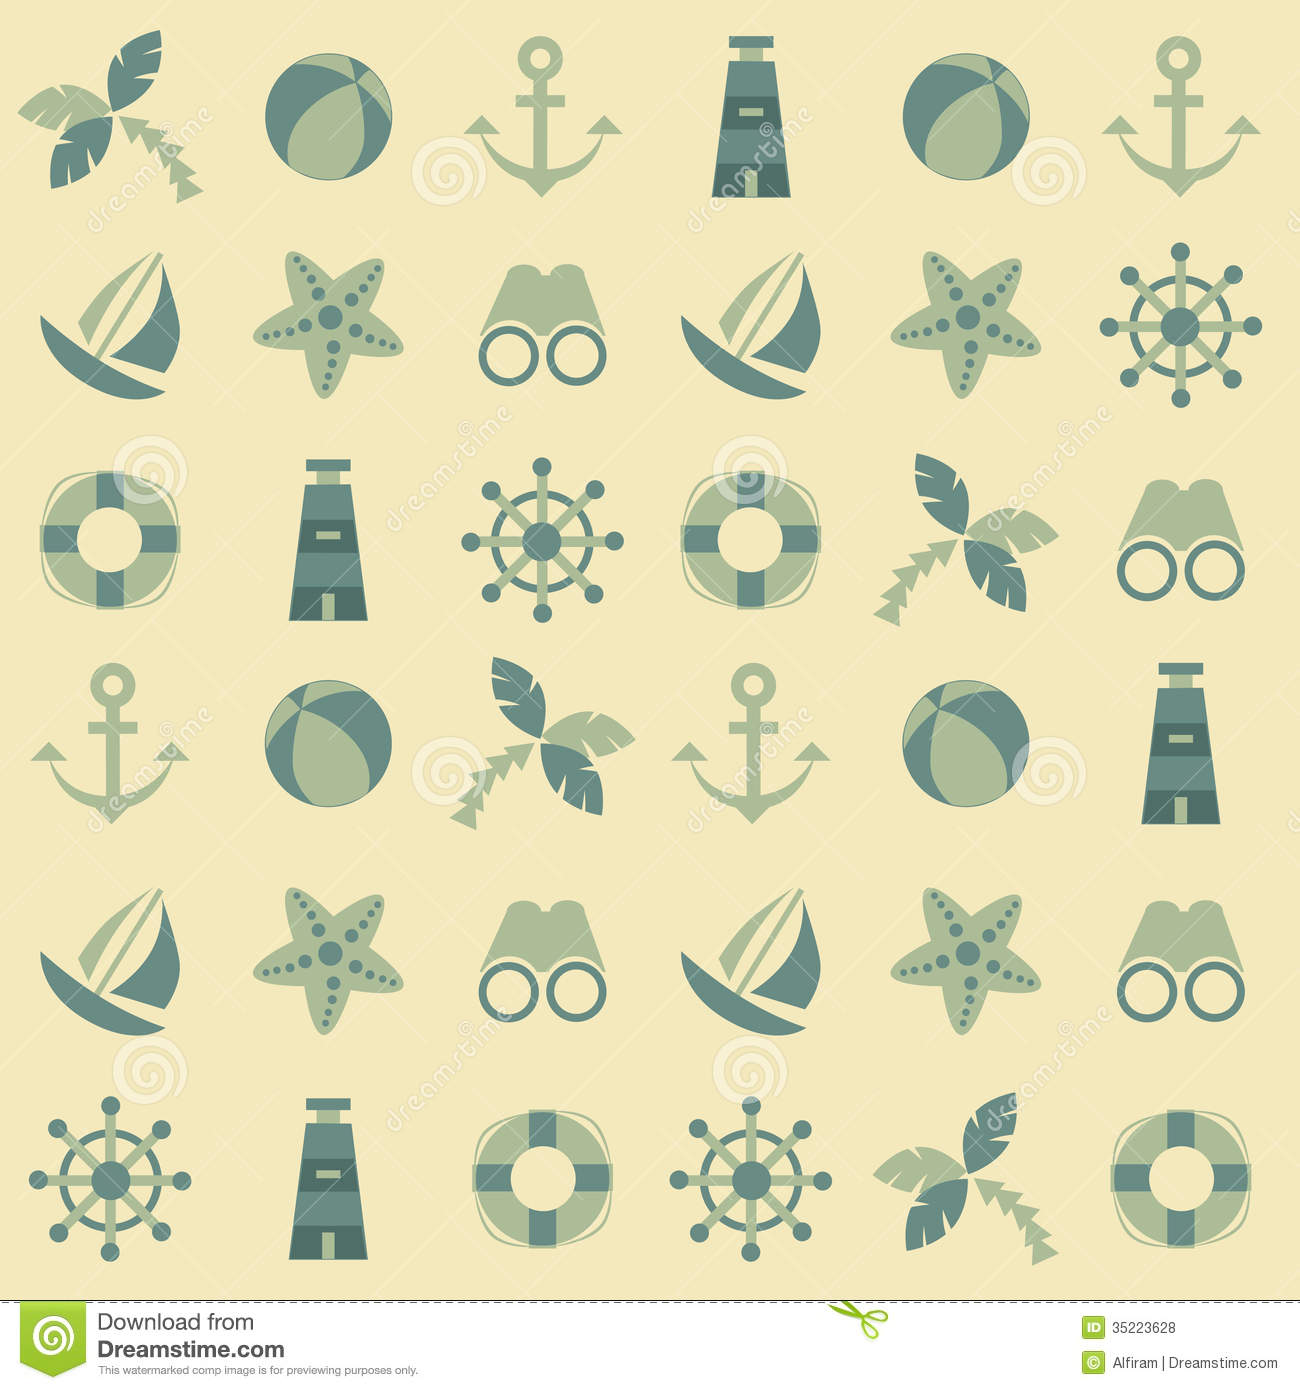 Colorful seamless pattern with sea symbols on a light background.